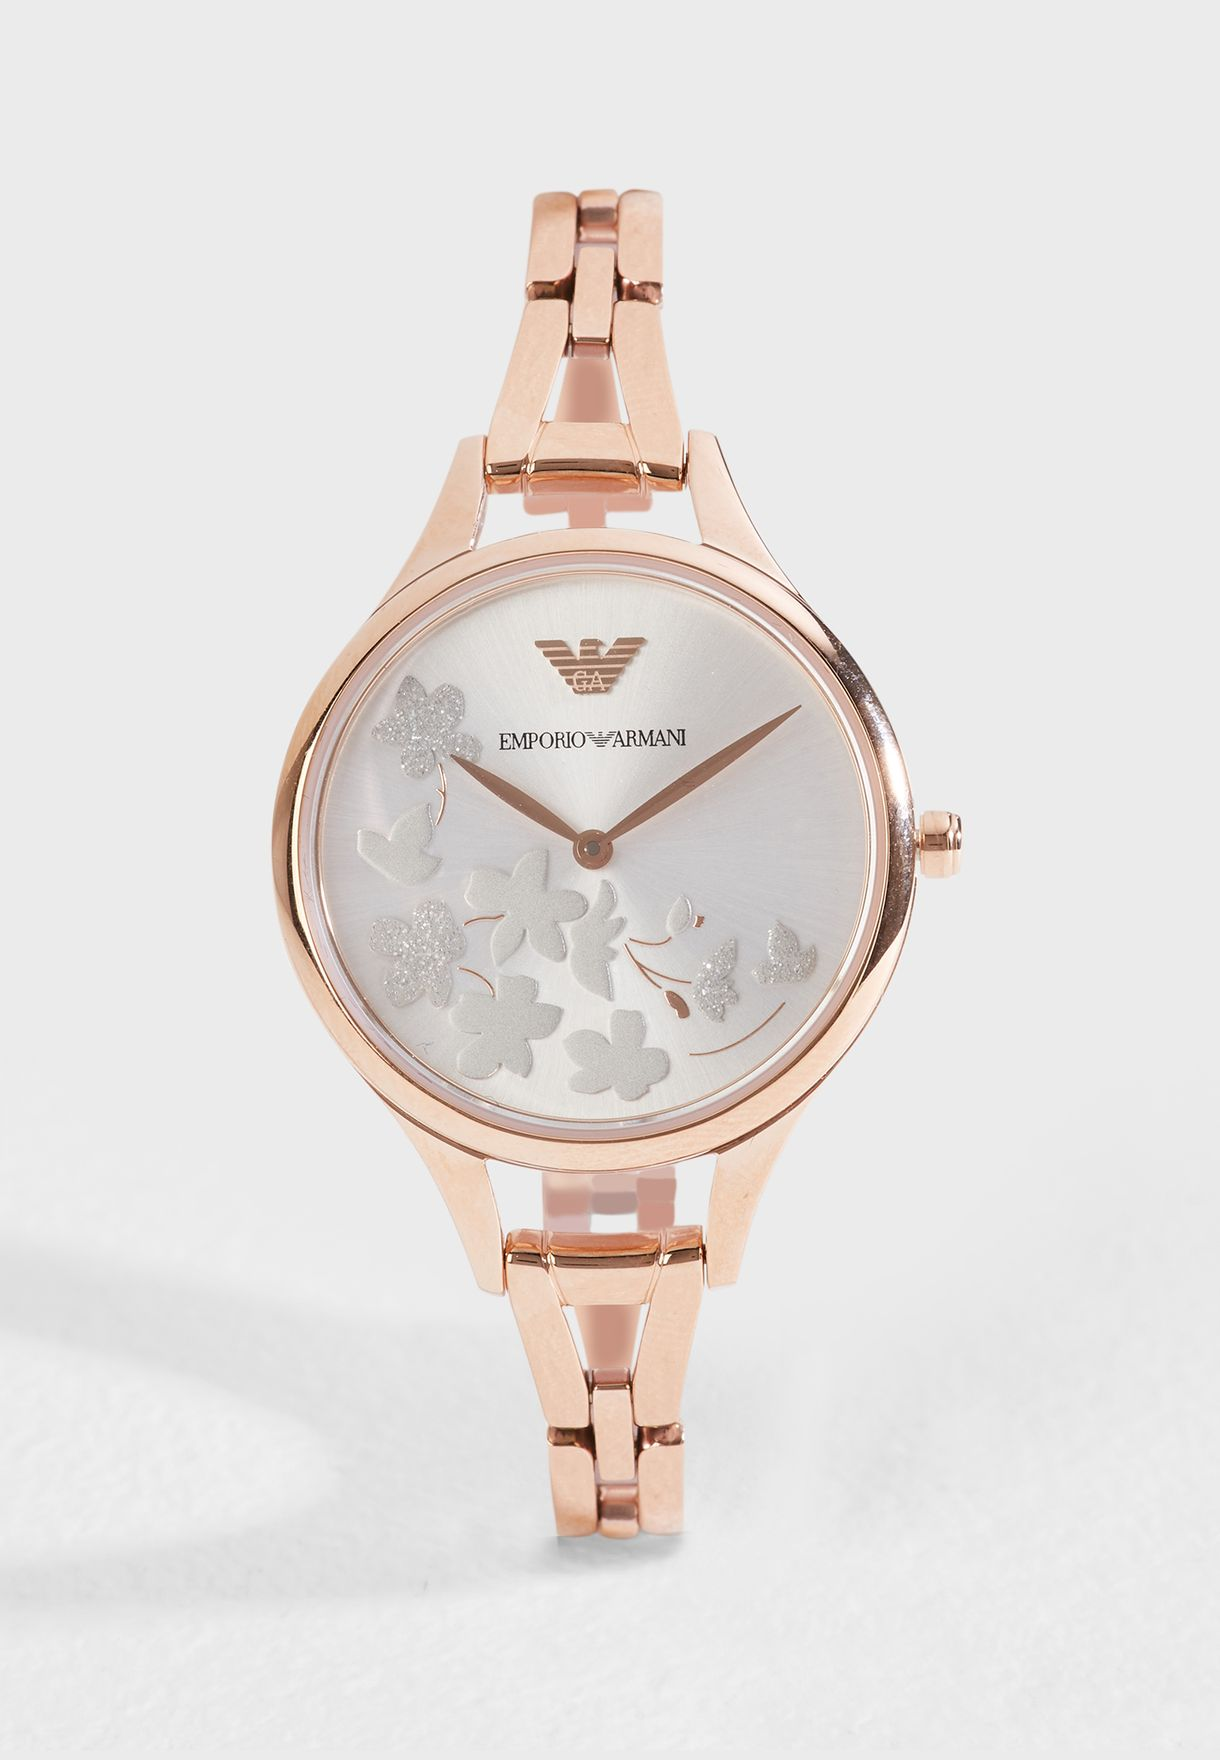 2070d1f8f3 AR11108 Emporio Armani Dress Watch